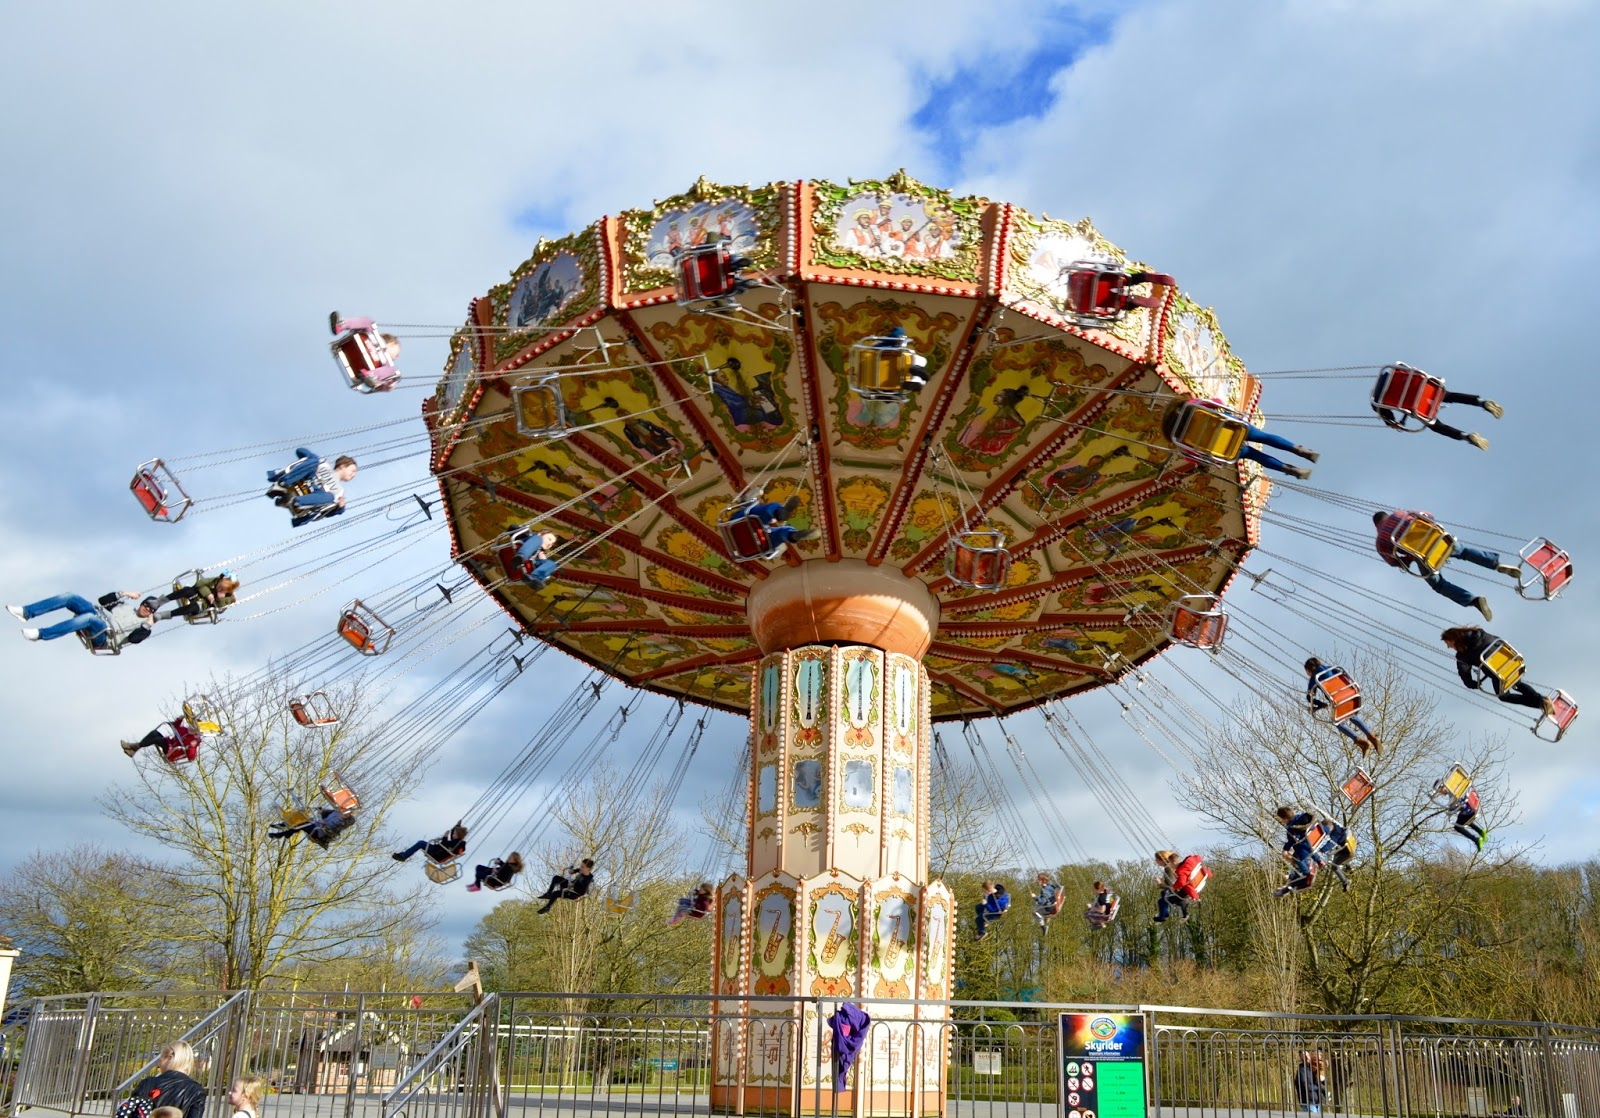 Visiting Angry Birds Activity Park at Lightwater Valley, North Yorkshire - swings ride